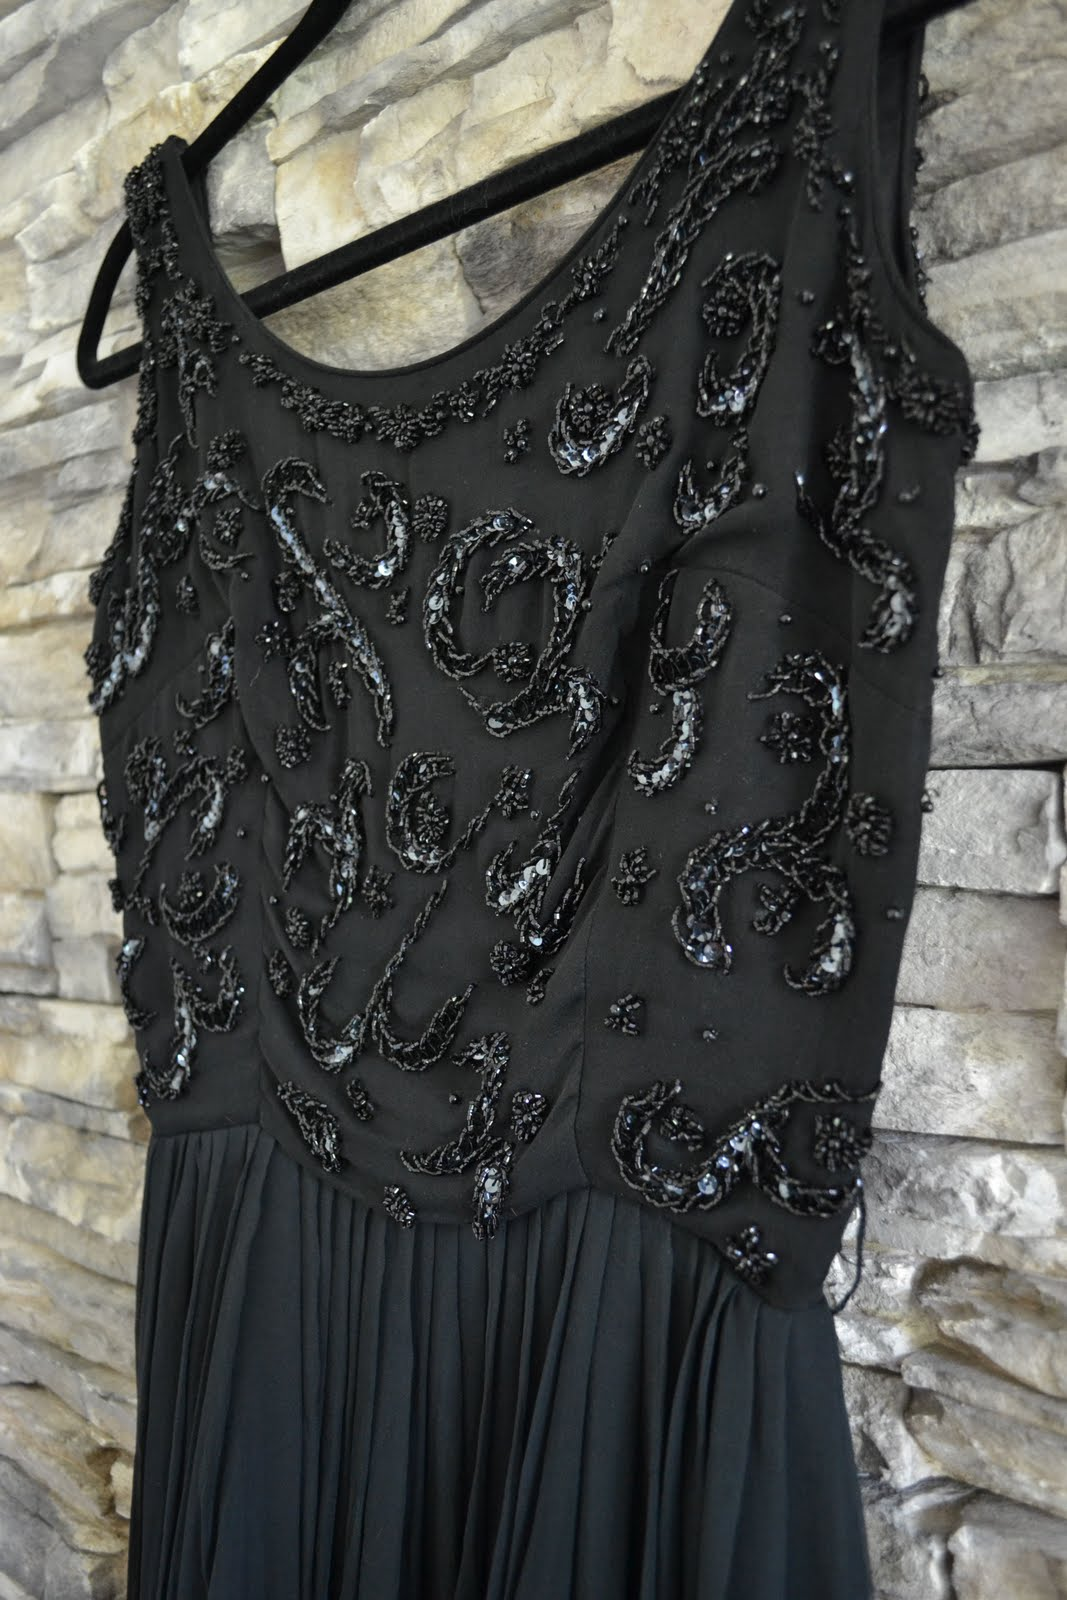 black vintage dress love the sparkle bridesmaid dresses pinterest vintage dresses. Black Bedroom Furniture Sets. Home Design Ideas